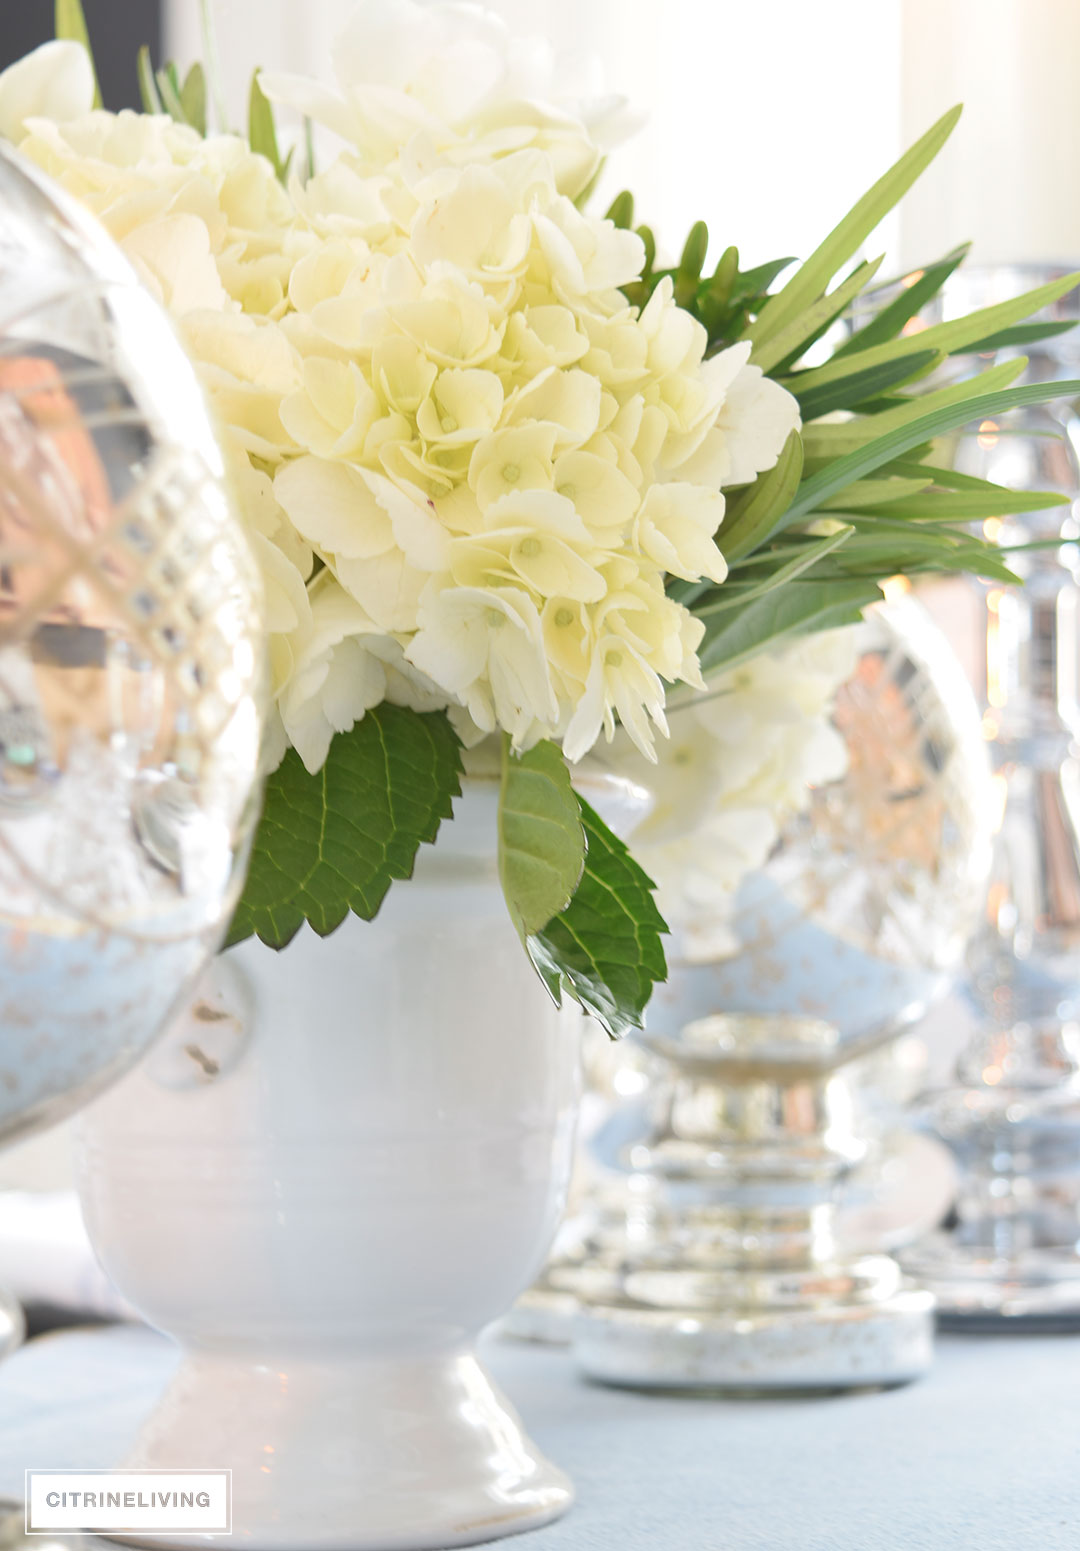 Simple and classic fresh hydrangeas are always the perfect centerpiece for any table.